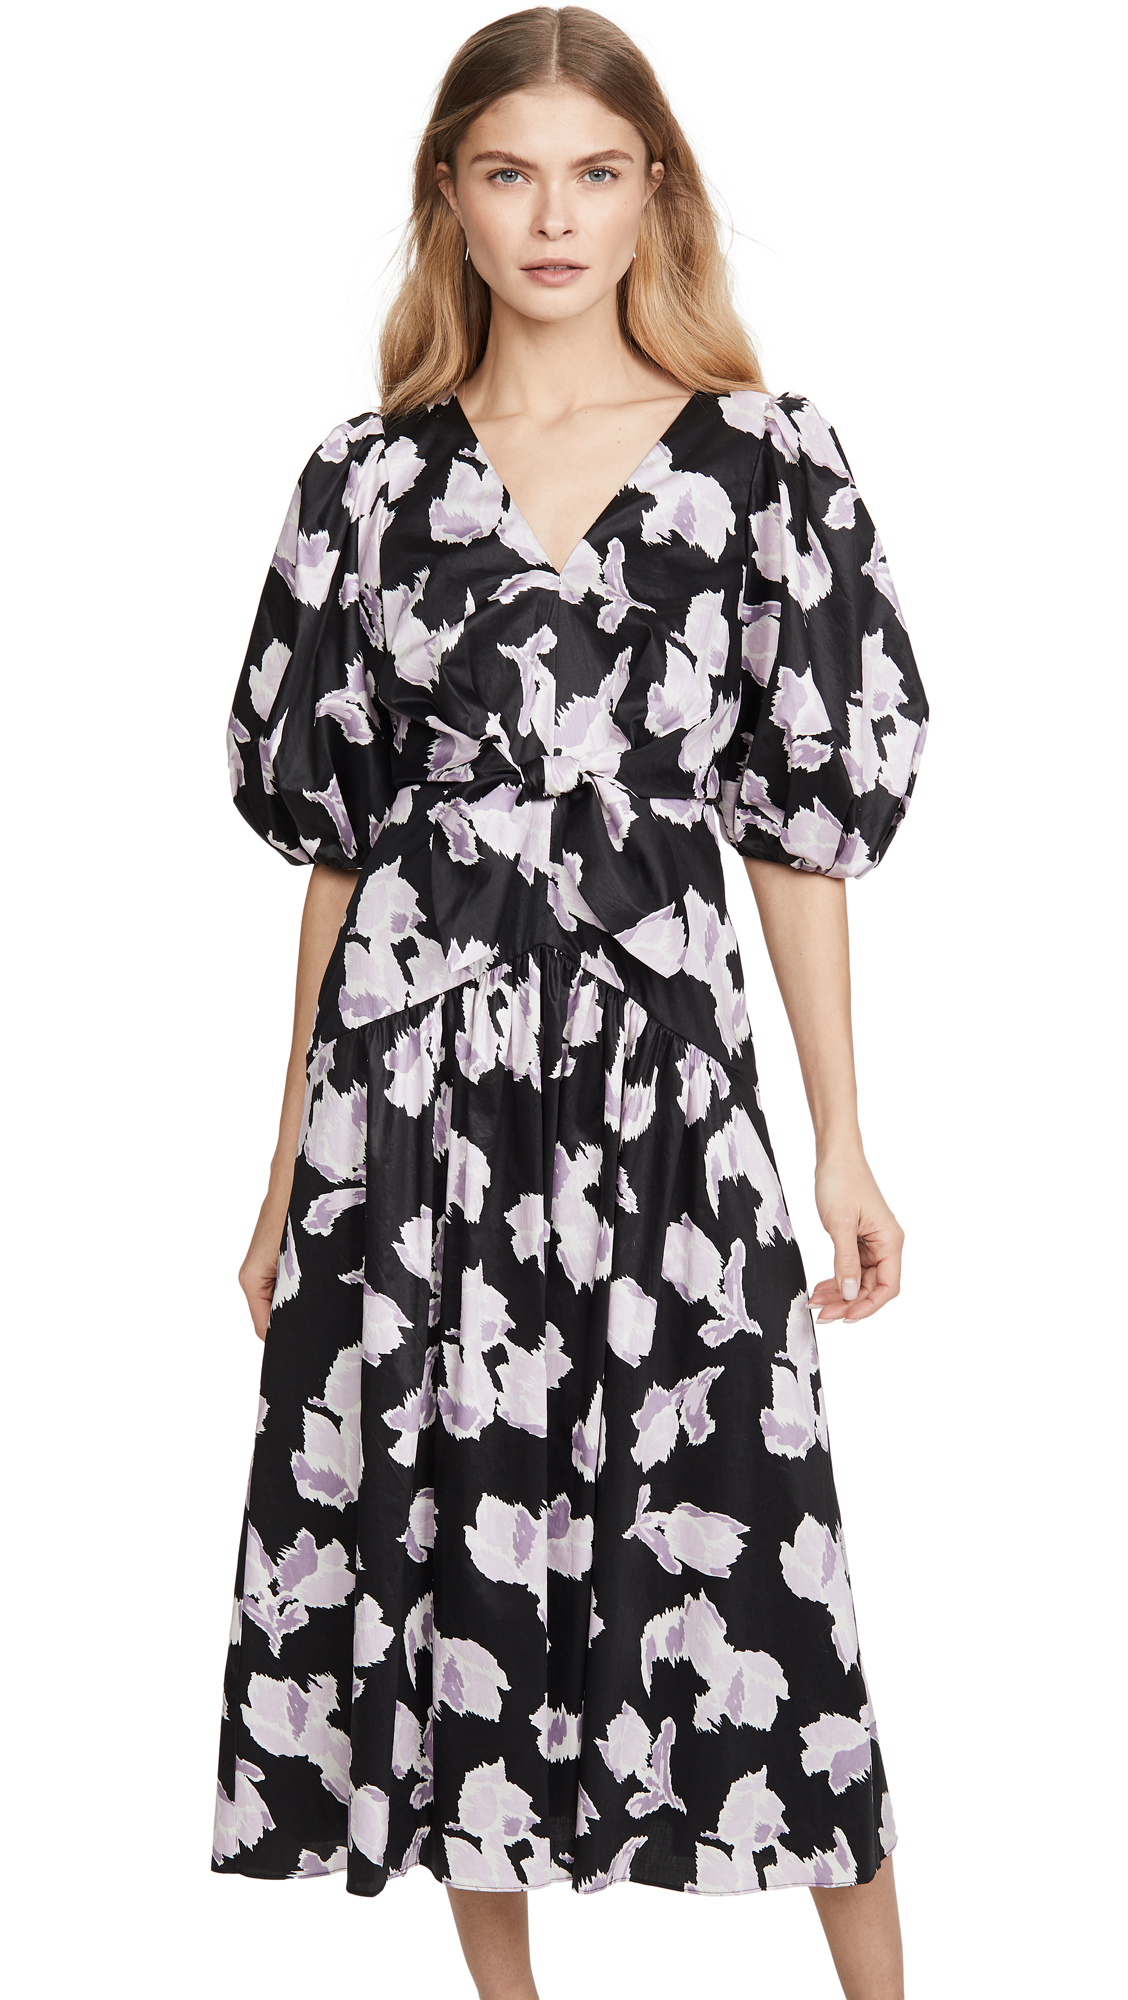 Rebecca Taylor Long Sleeve Ikat Tie Dress - 40% Off Sale